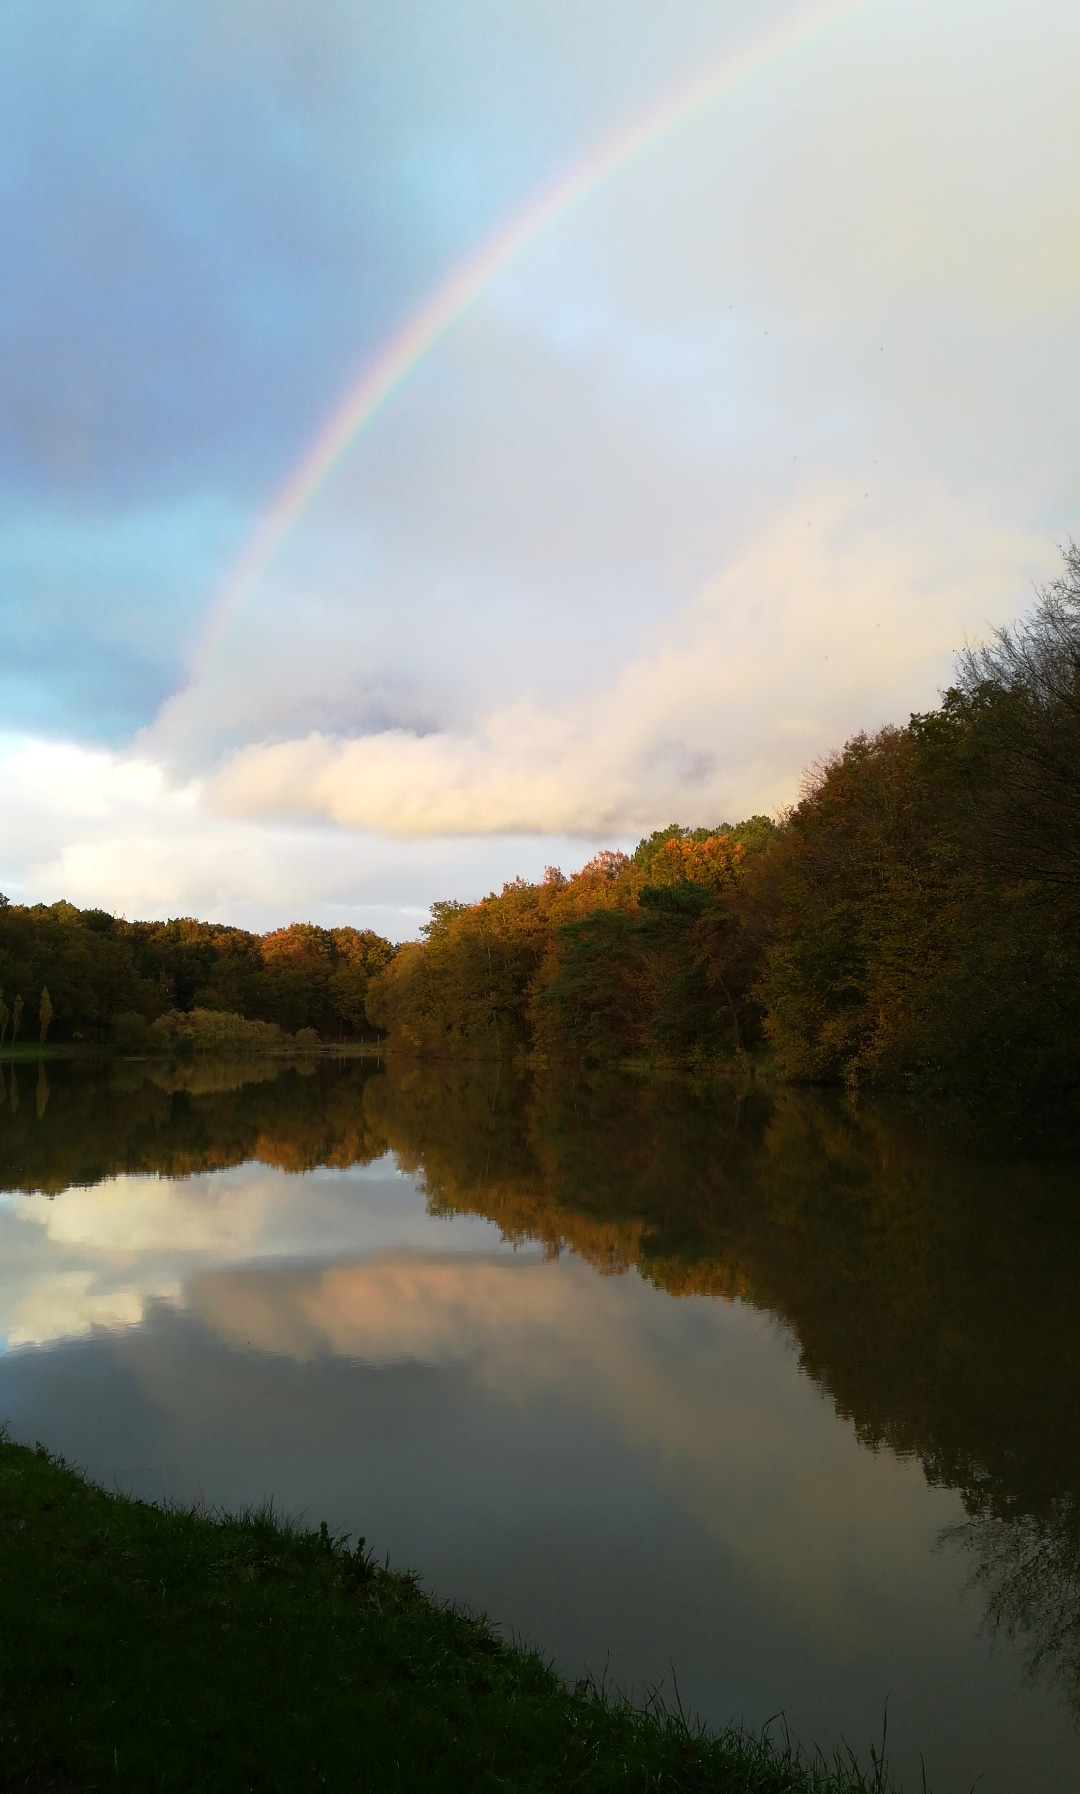 A rainbow above the pond